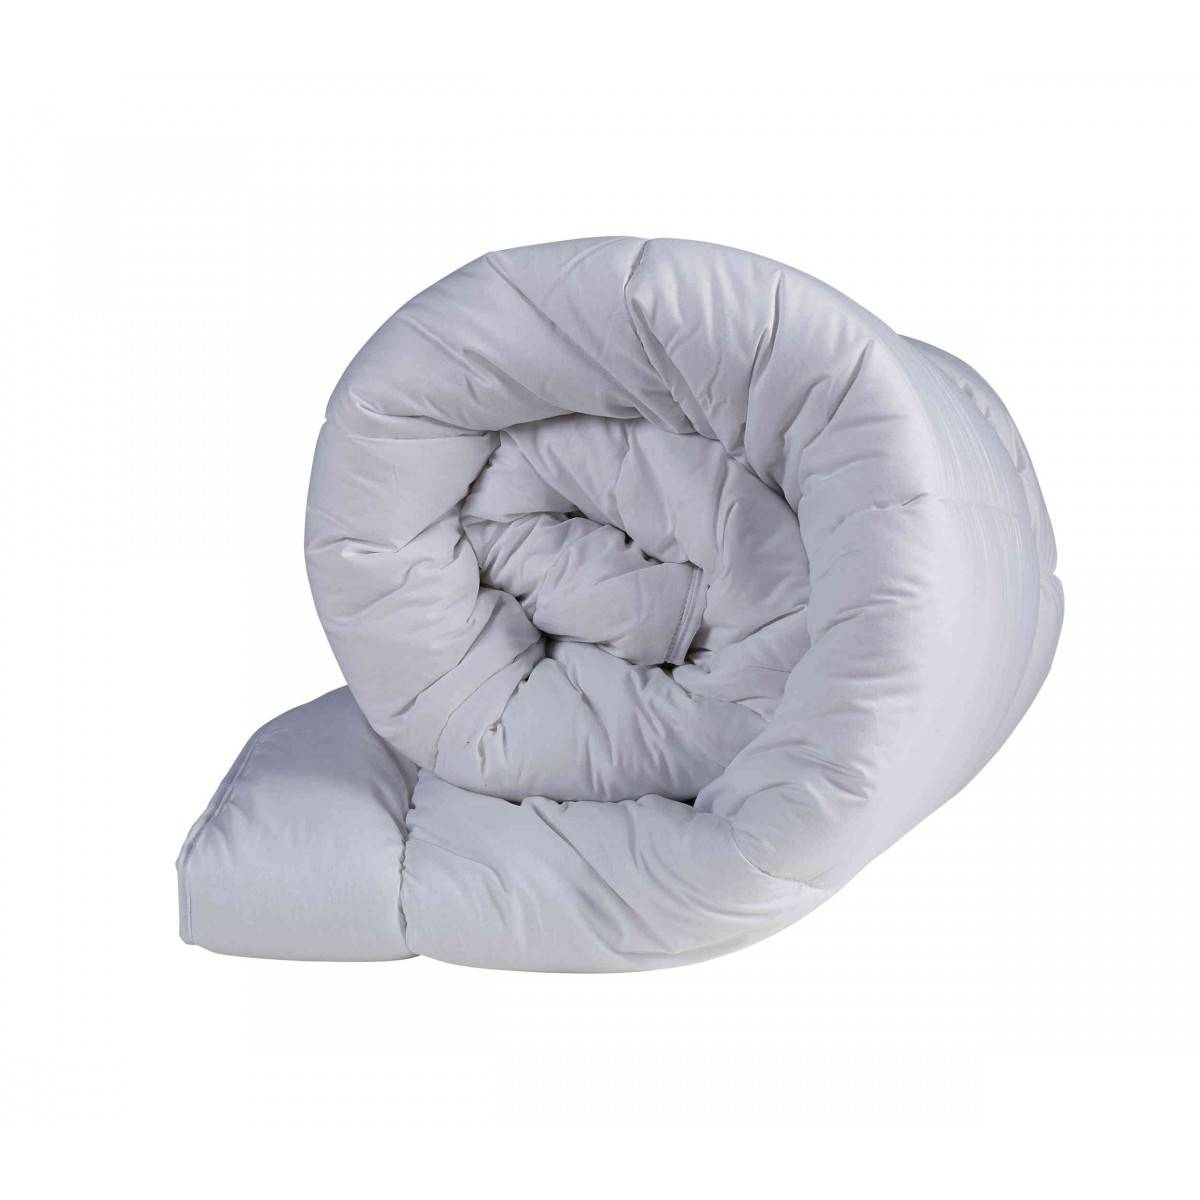 Someo Couette hiver anti-acariens 600g 260x240